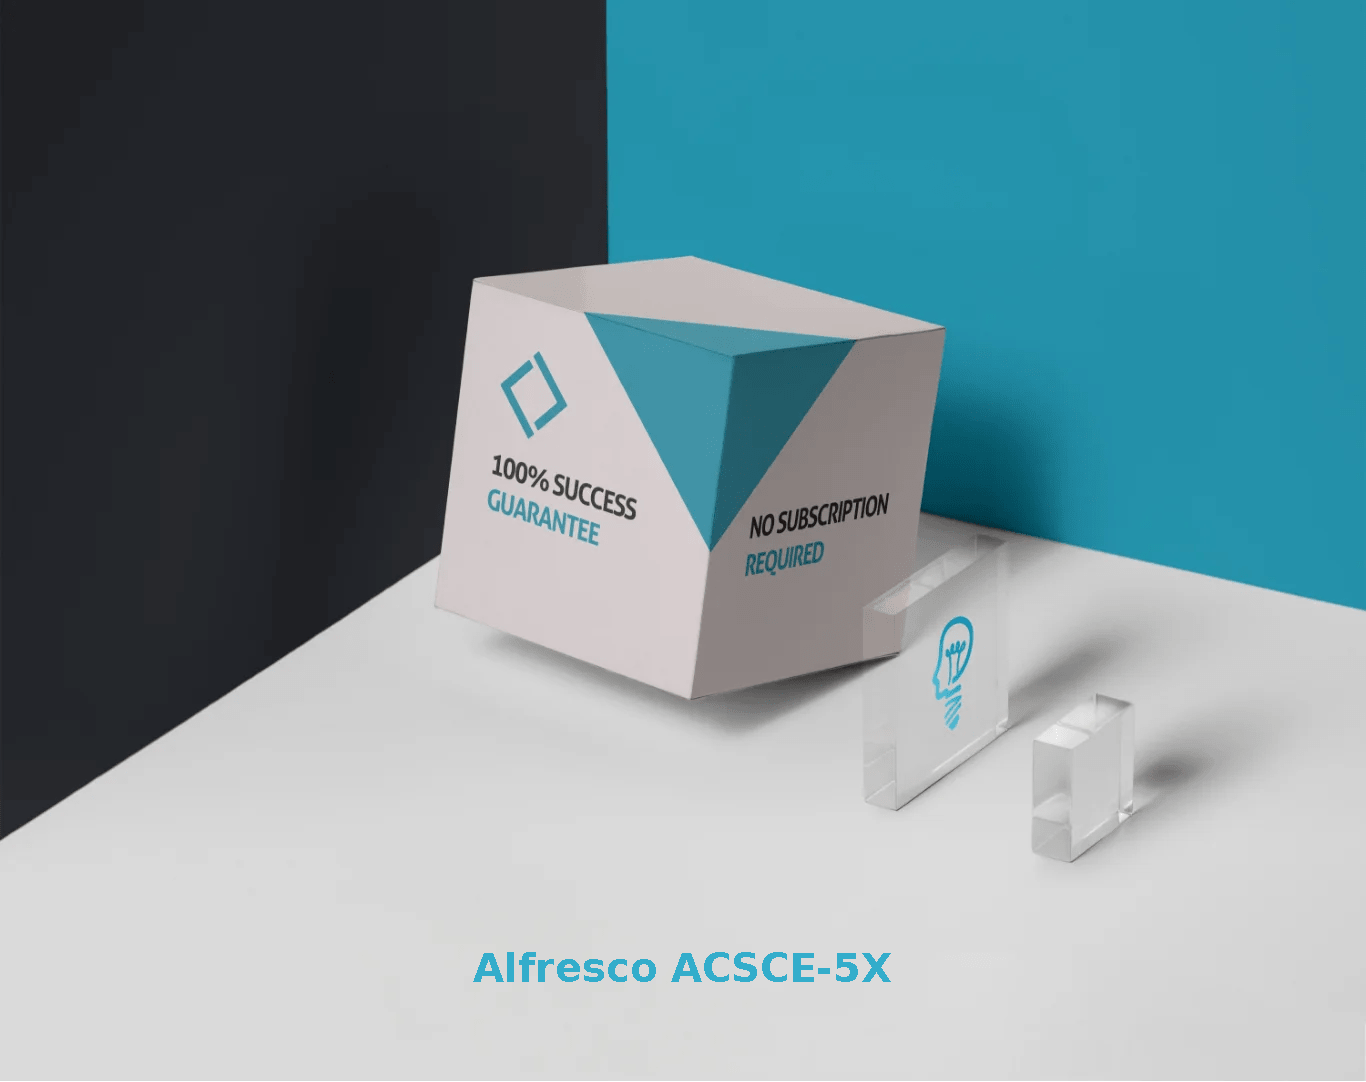 Alfresco ACSCE-5X Exams